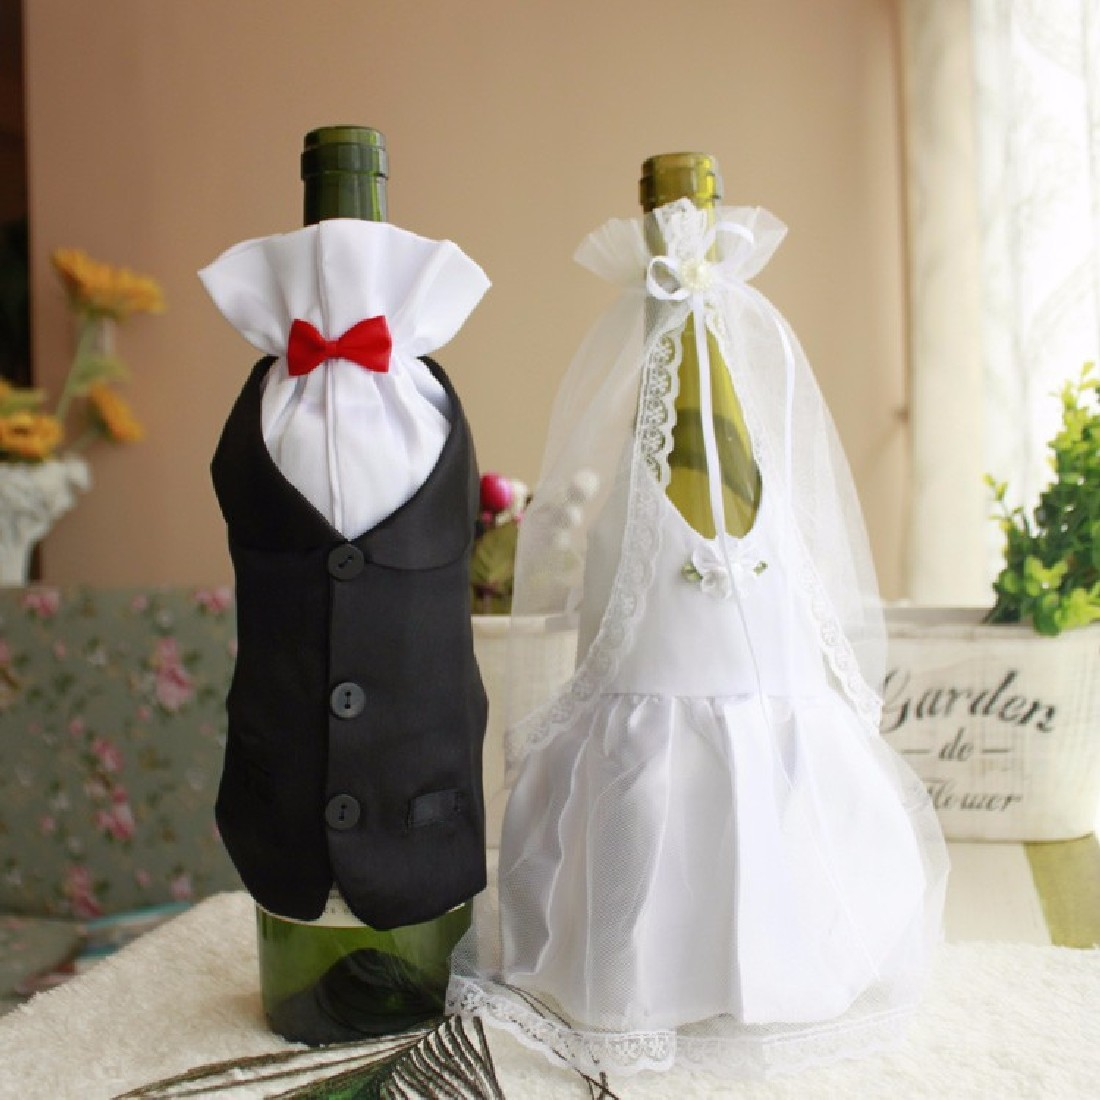 Wedding Decorations Bride And Groom Dress Wine Glass Champagne